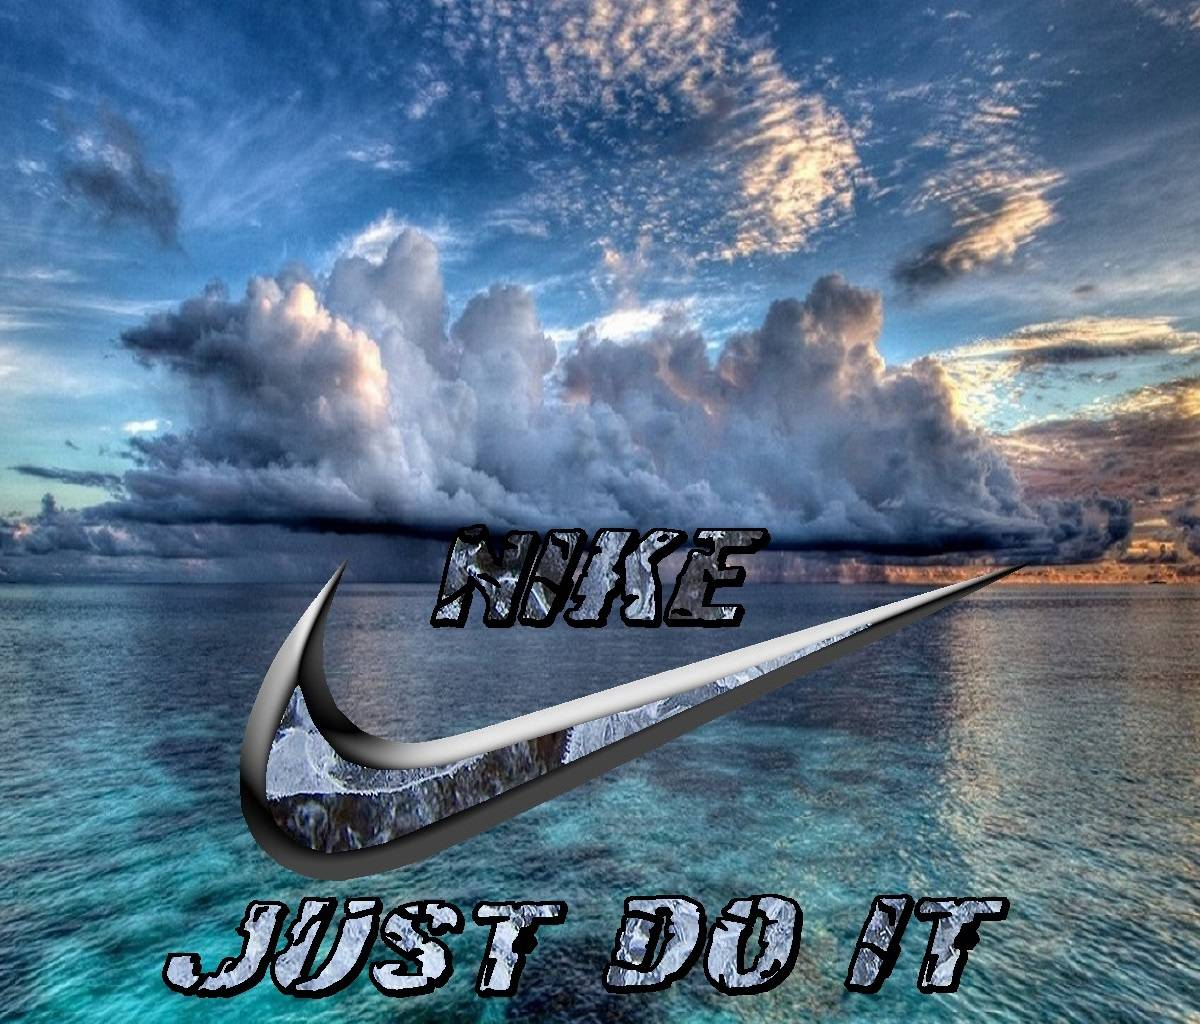 Nike on the water